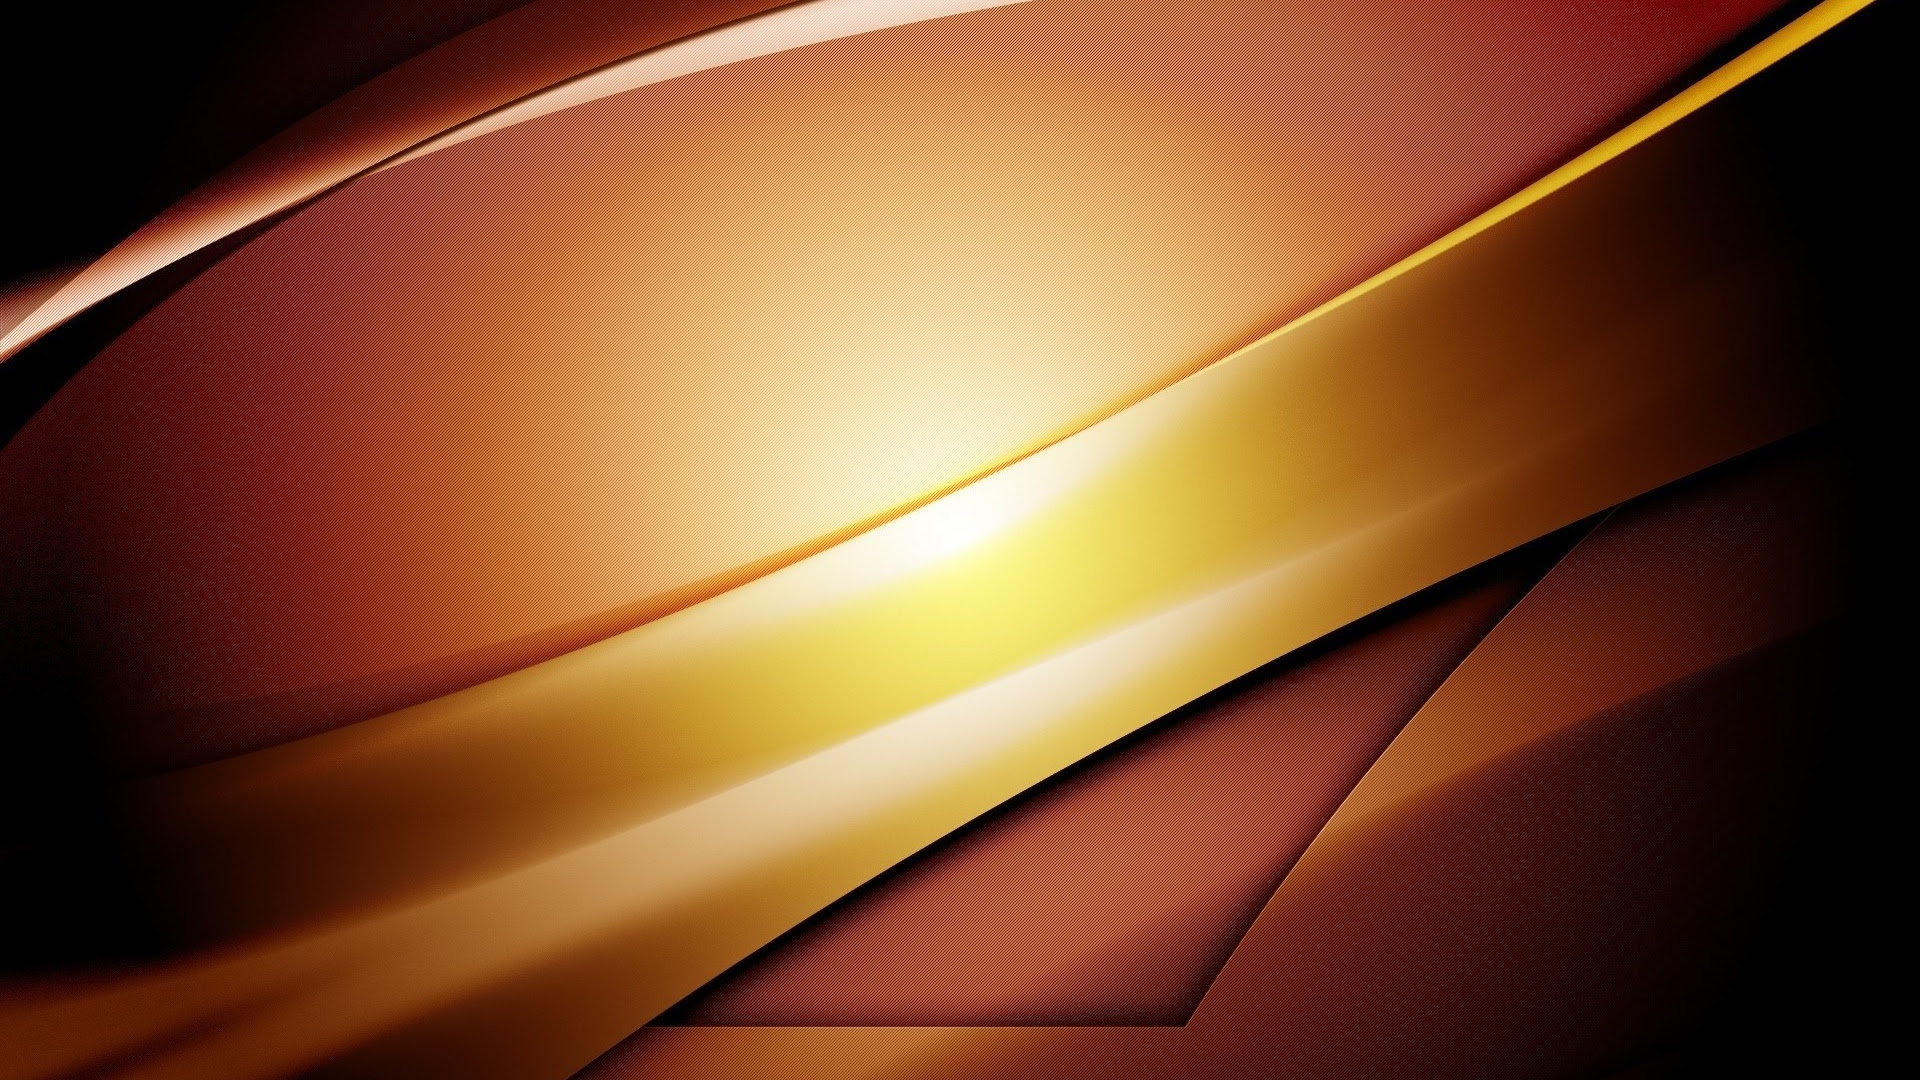 Download Wallpaper 1920x1080 lines, light, brown, form Full HD 1080p HD Background